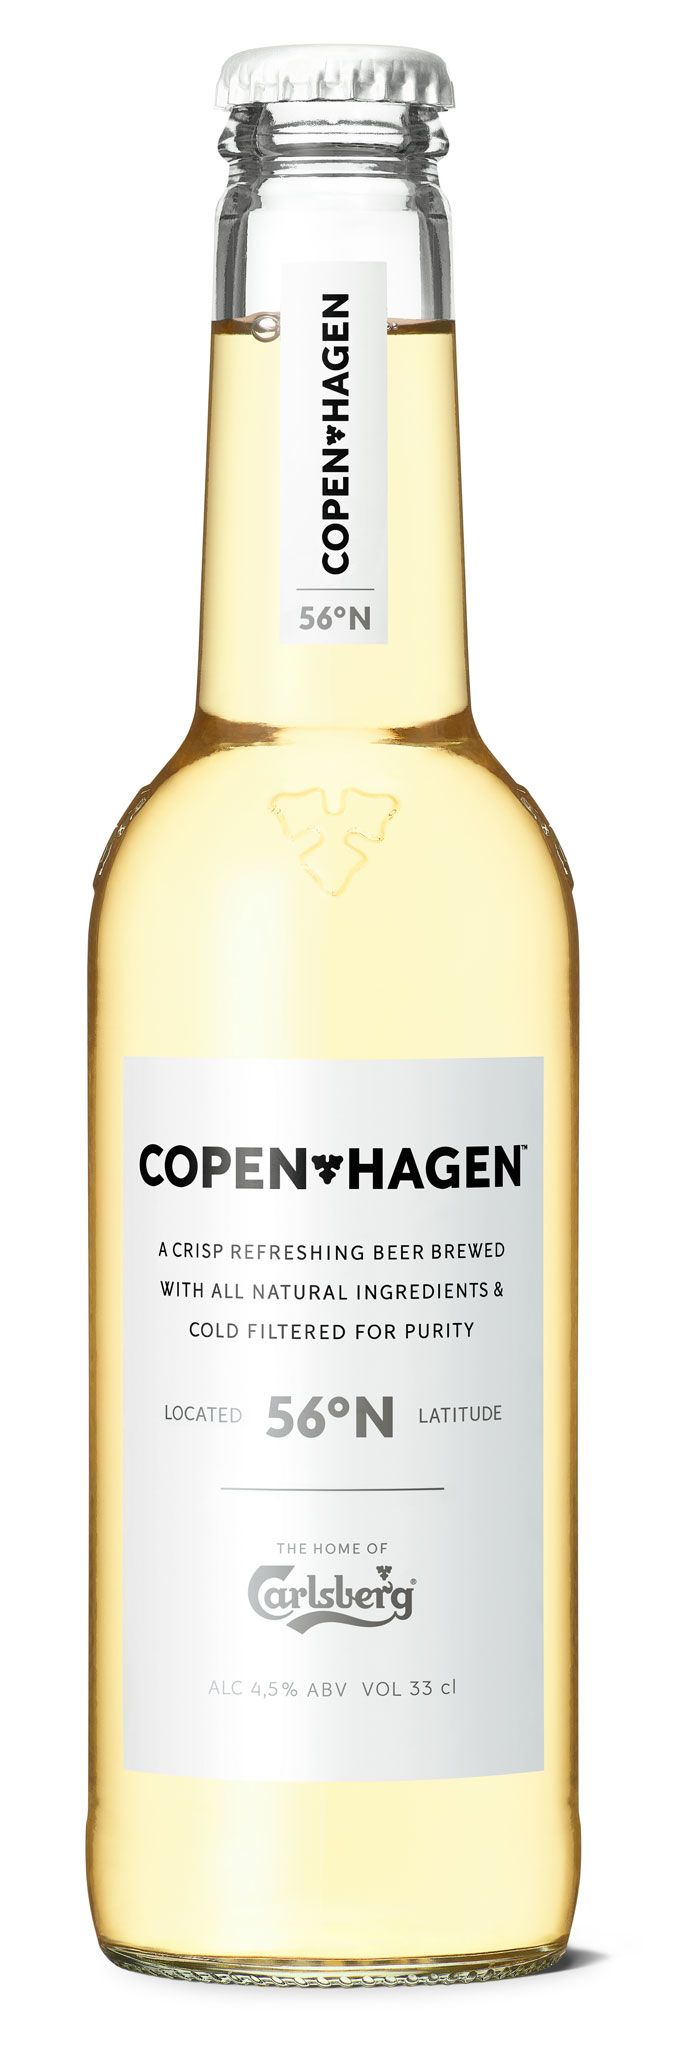 Carlsberg Copenhagen, targeted at consumers that are very design savvy. The beer, brand and design have all been developed by Carlsberg's International Innovation Department in Copenhagen in collaboration with the Carlsberg Research Center.